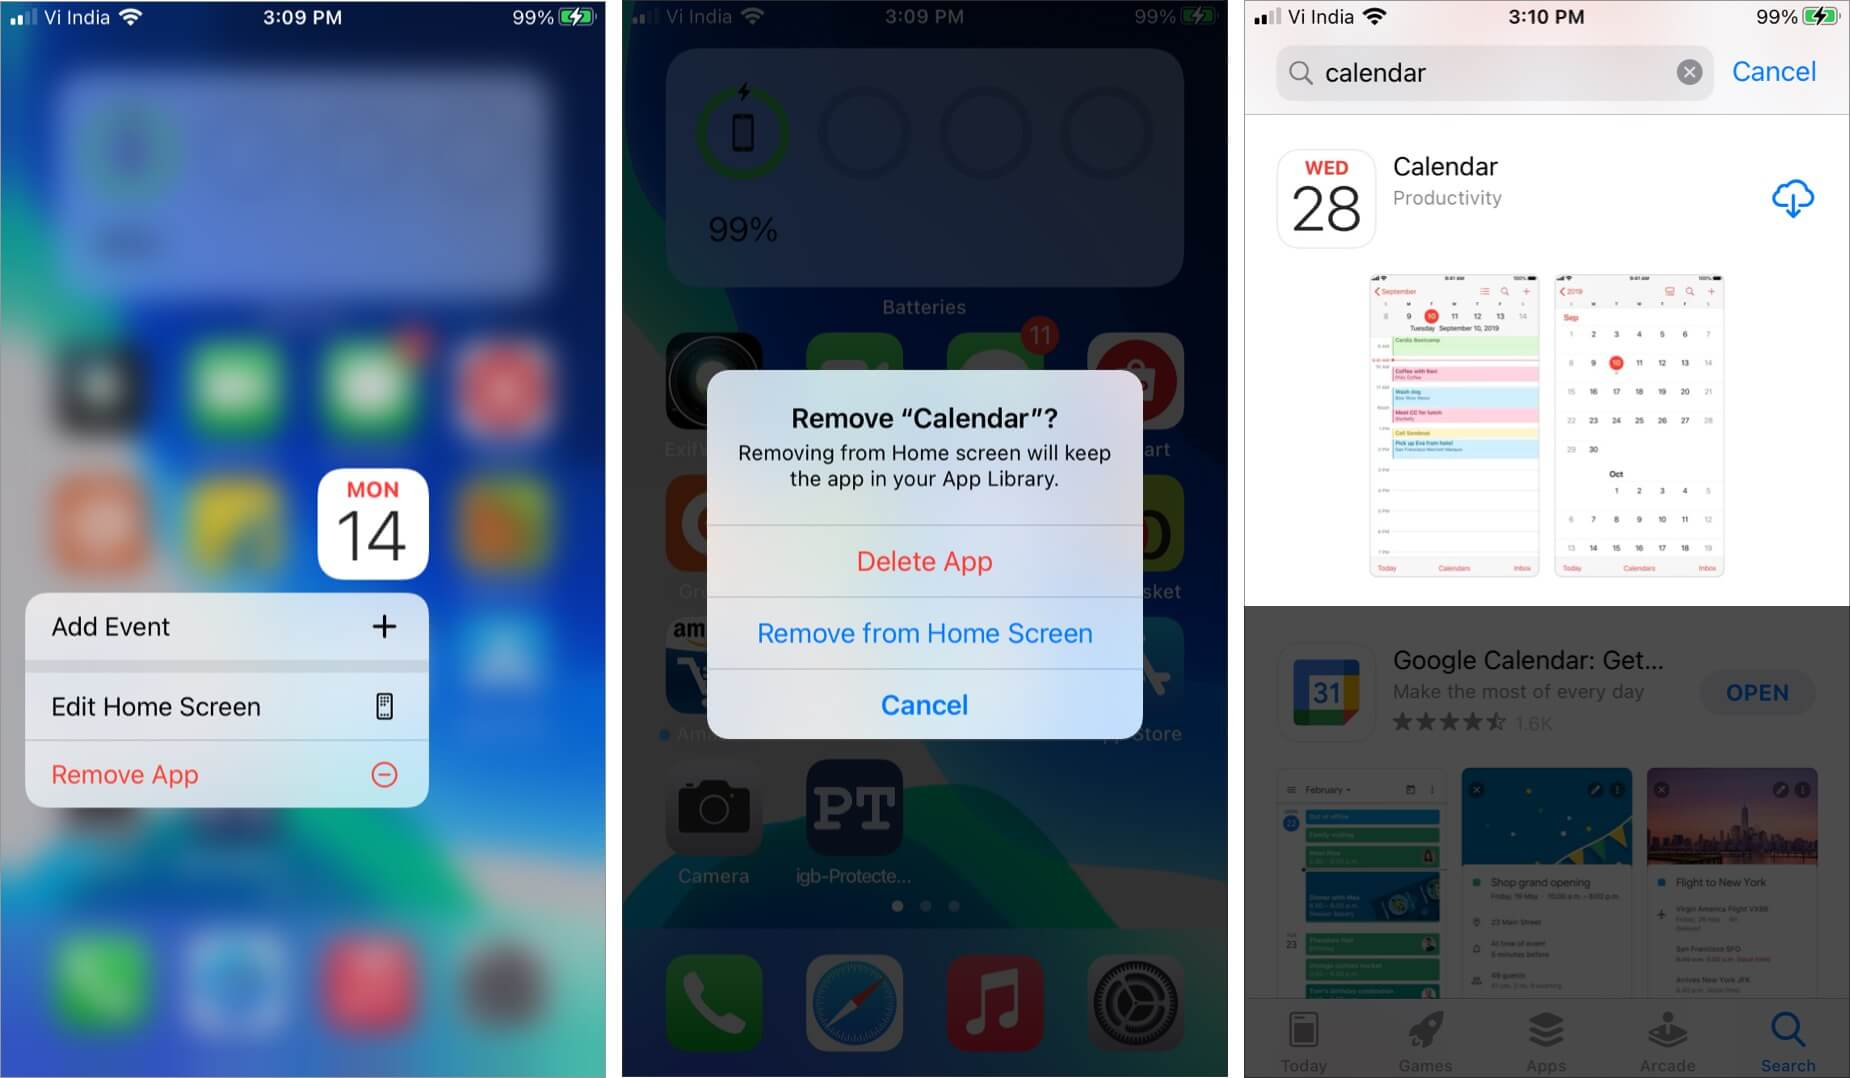 Uninstall and Reinstall Calendar App on iPhone